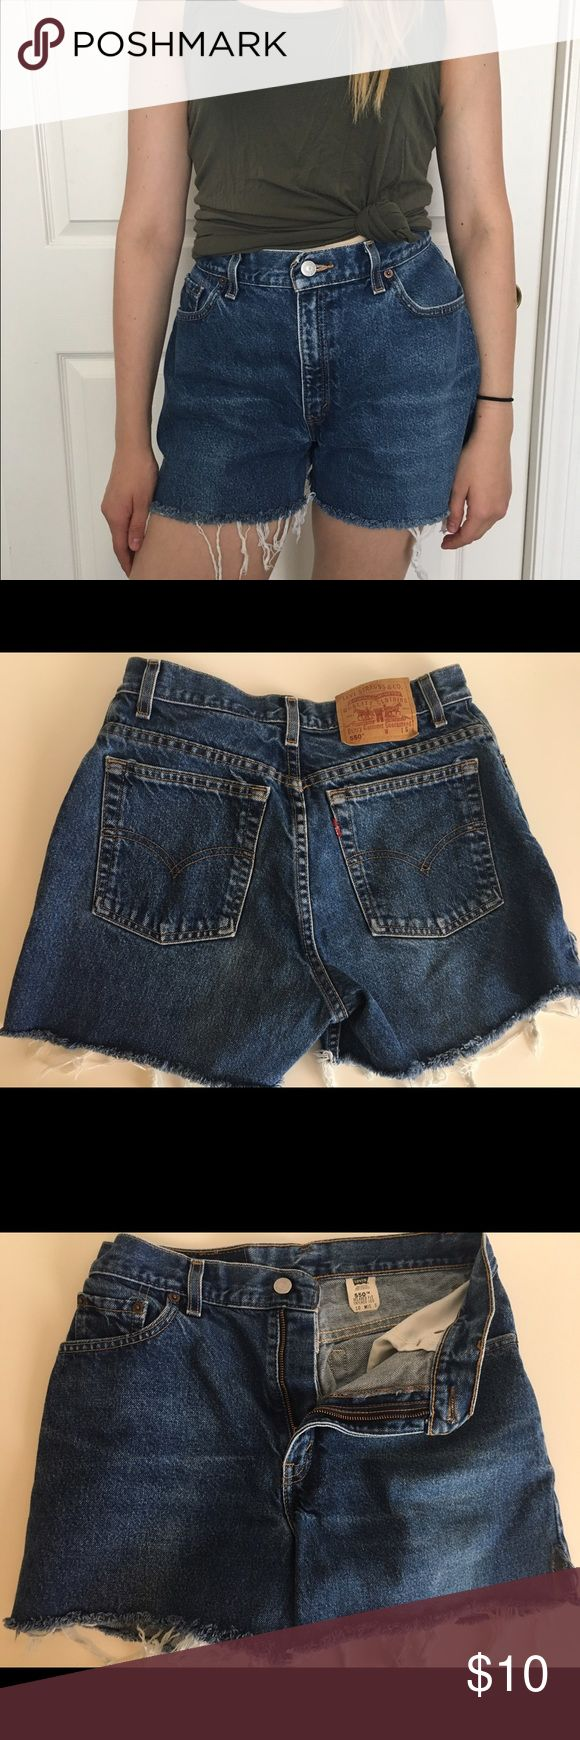 Levi's cut shorts High wasted levis shorts (shirt also for sale) Levi's Shorts Jean Shorts